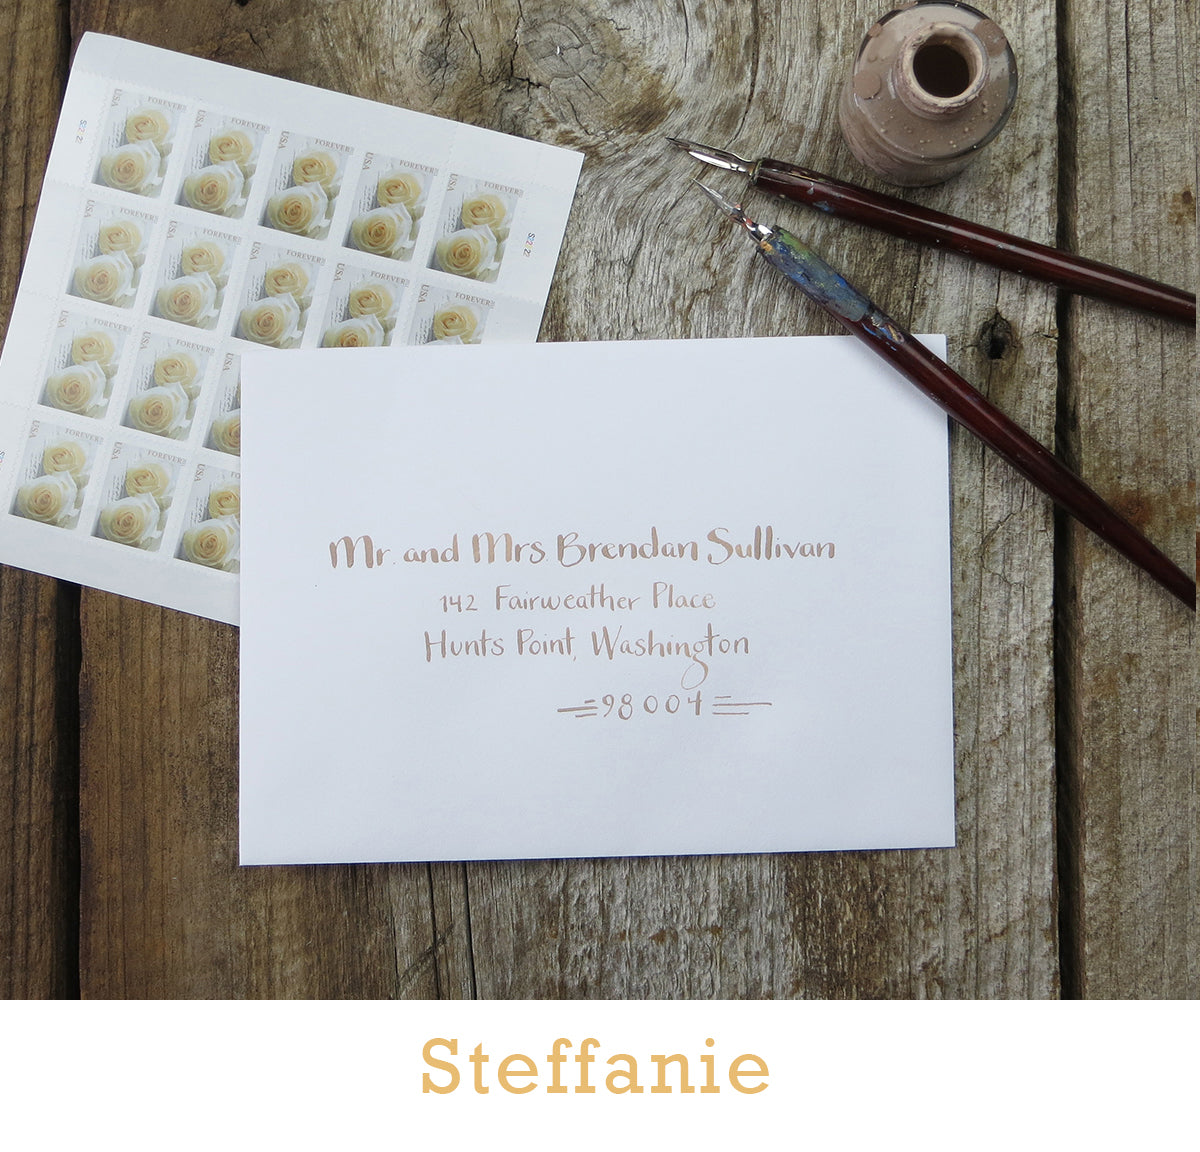 Steffanie calligraphy El's Cards